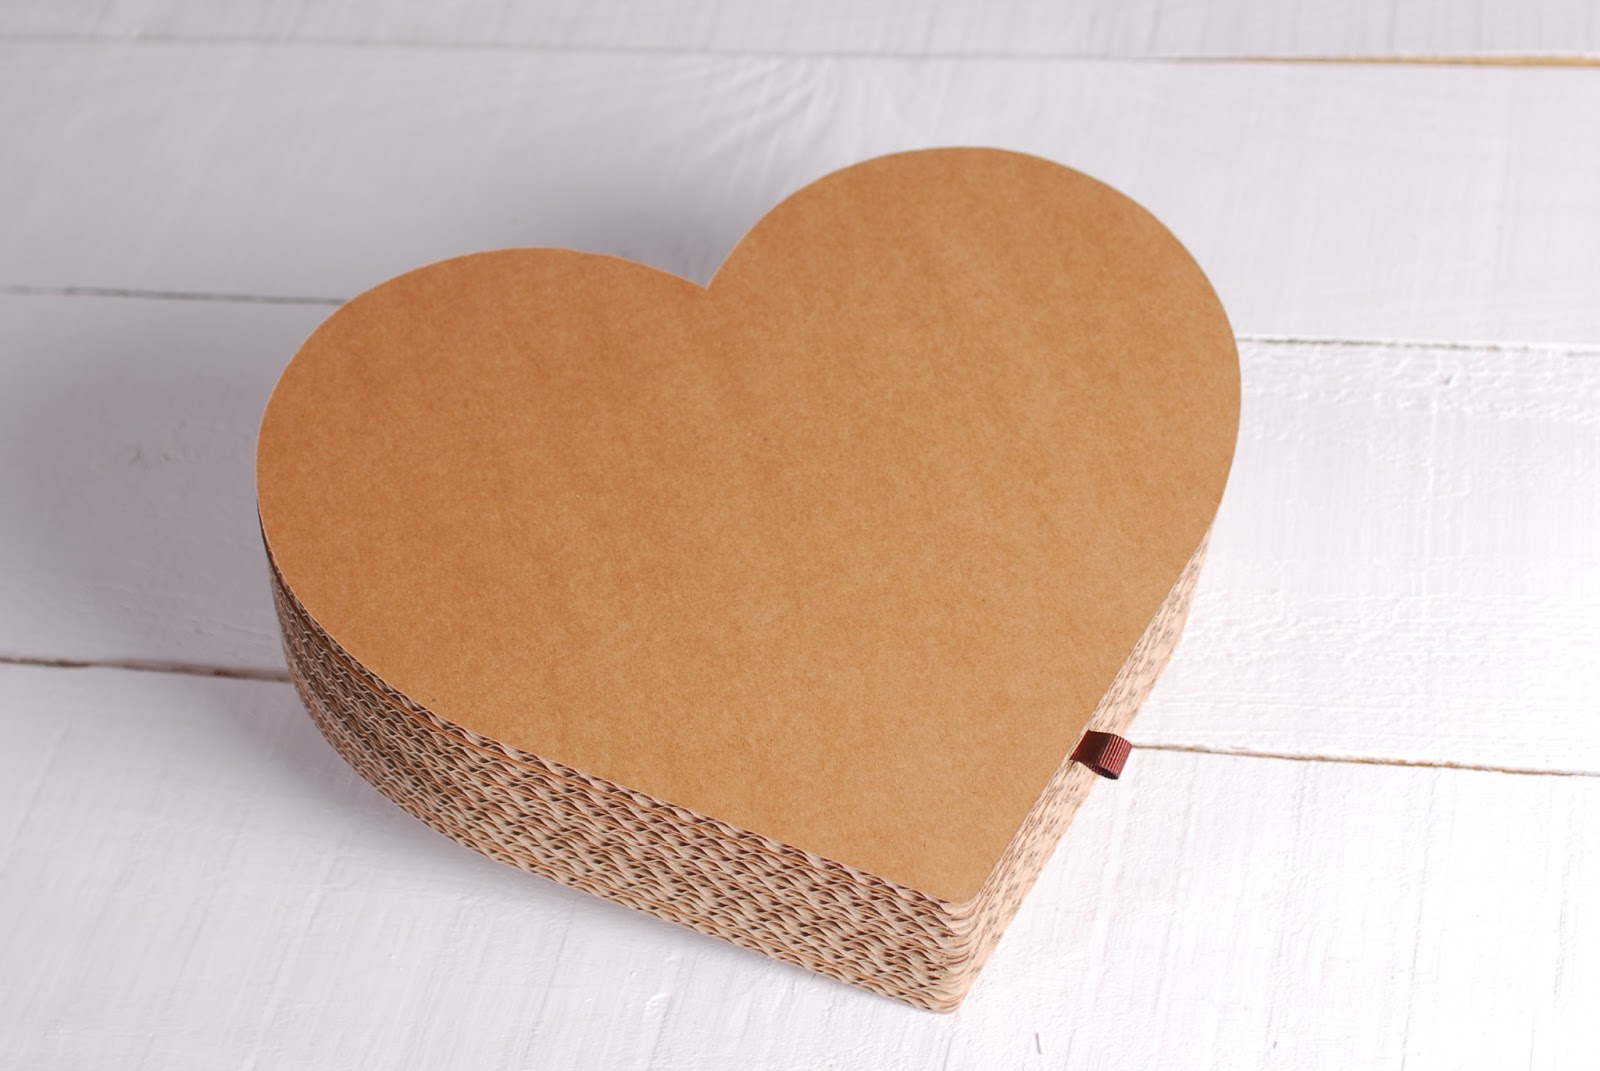 gift wrapping ideas cardboard heart box homemade craft project